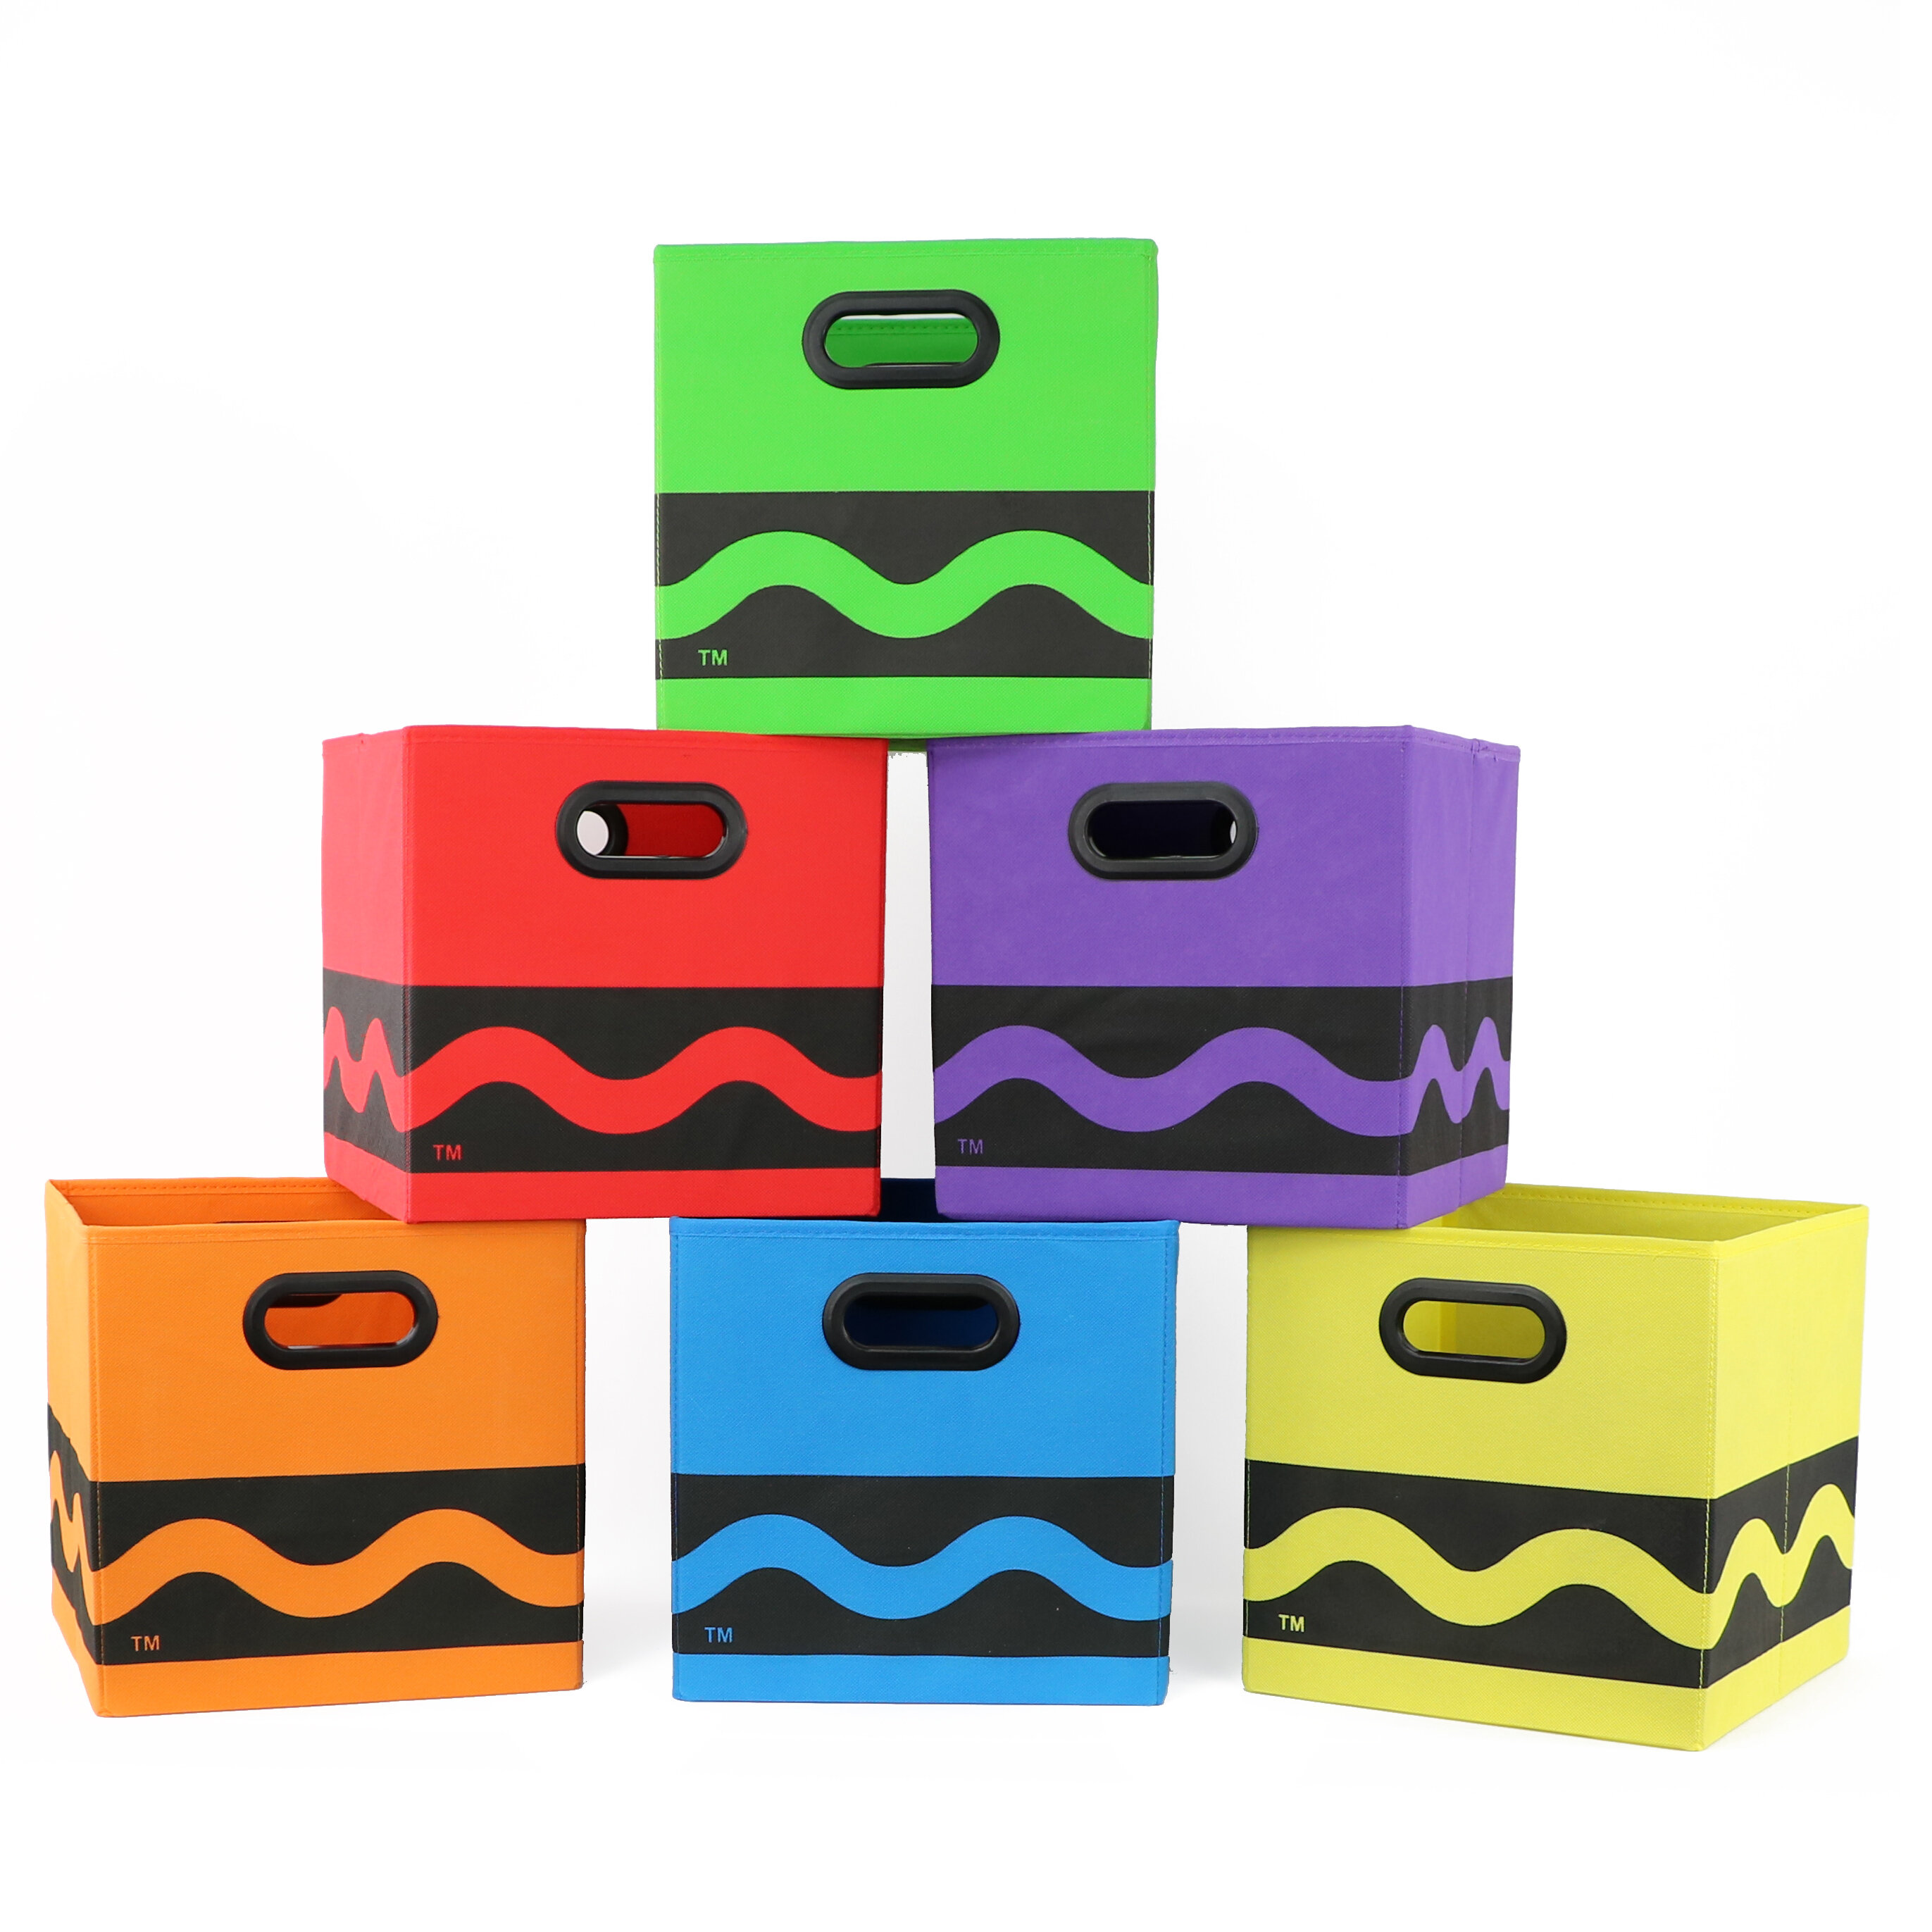 Zoomie Kids Black Serpentine 6 Piece Bundle Storage Bin Set U0026 Reviews |  Wayfair